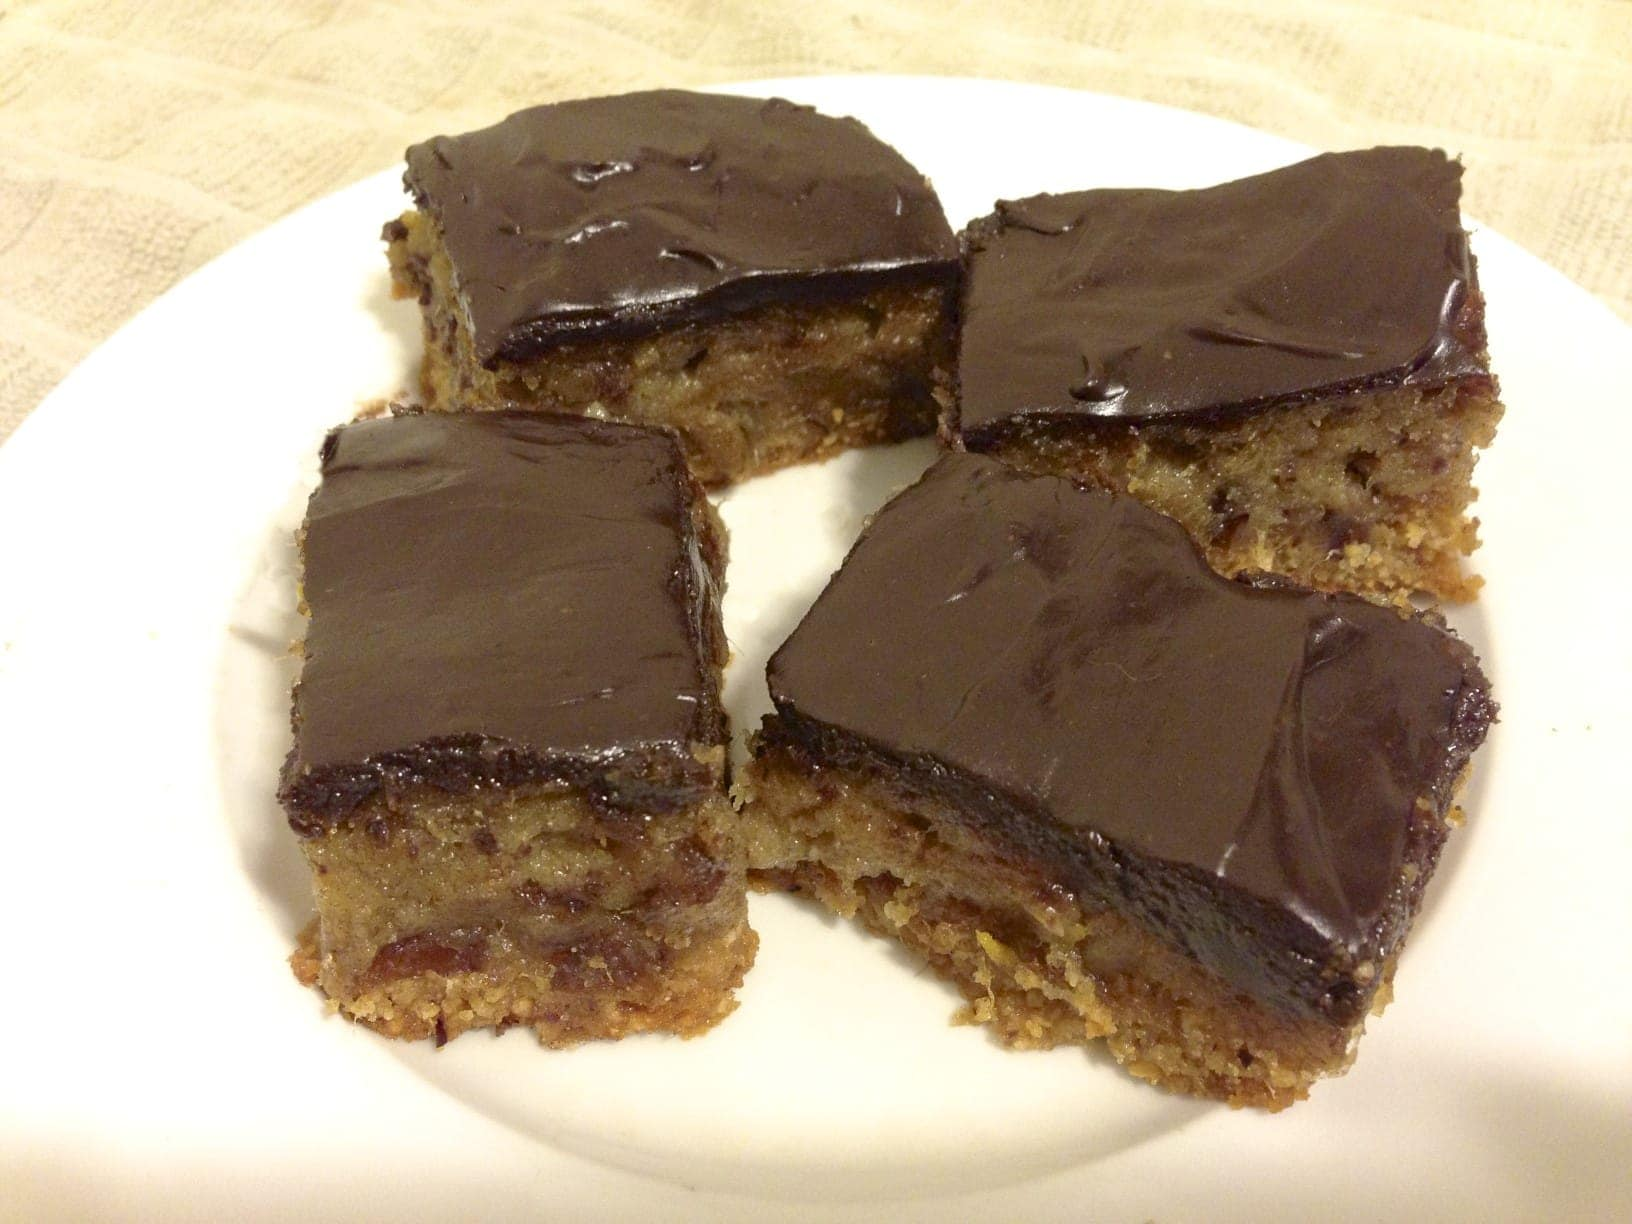 paleo:primal chocolate, date and orange bars